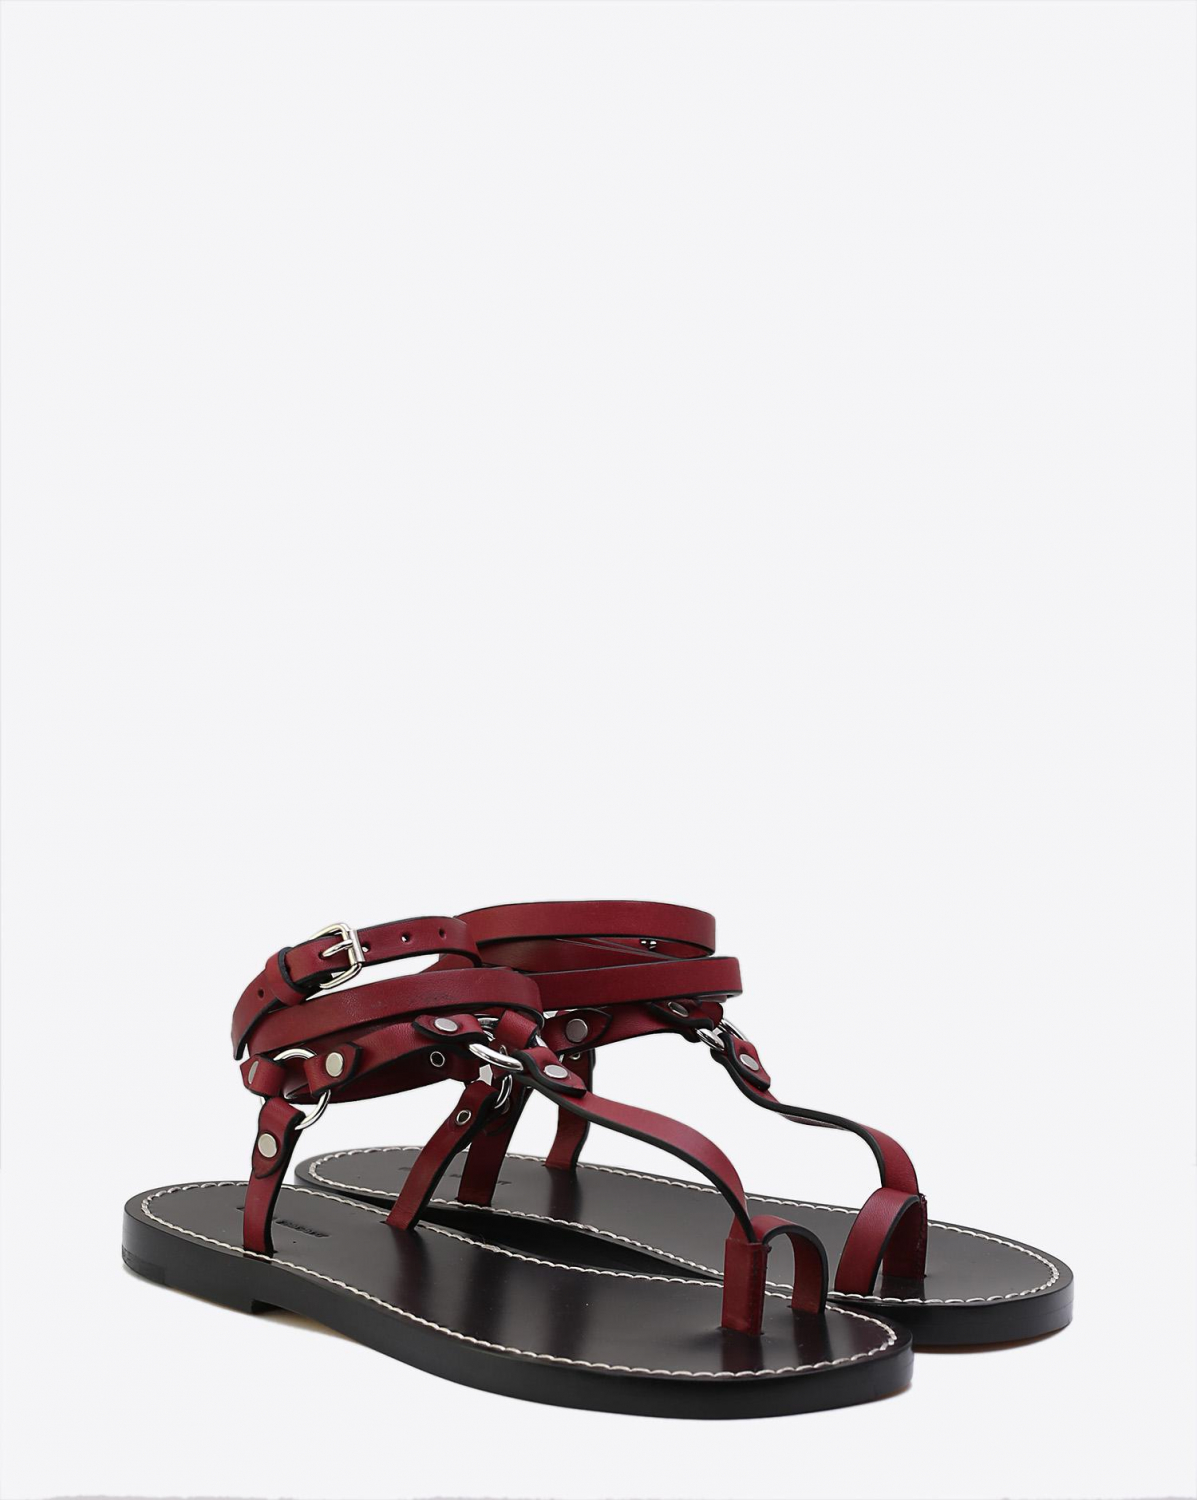 Isabel Marant Chaussures Sandales Joxxy - Burgundy